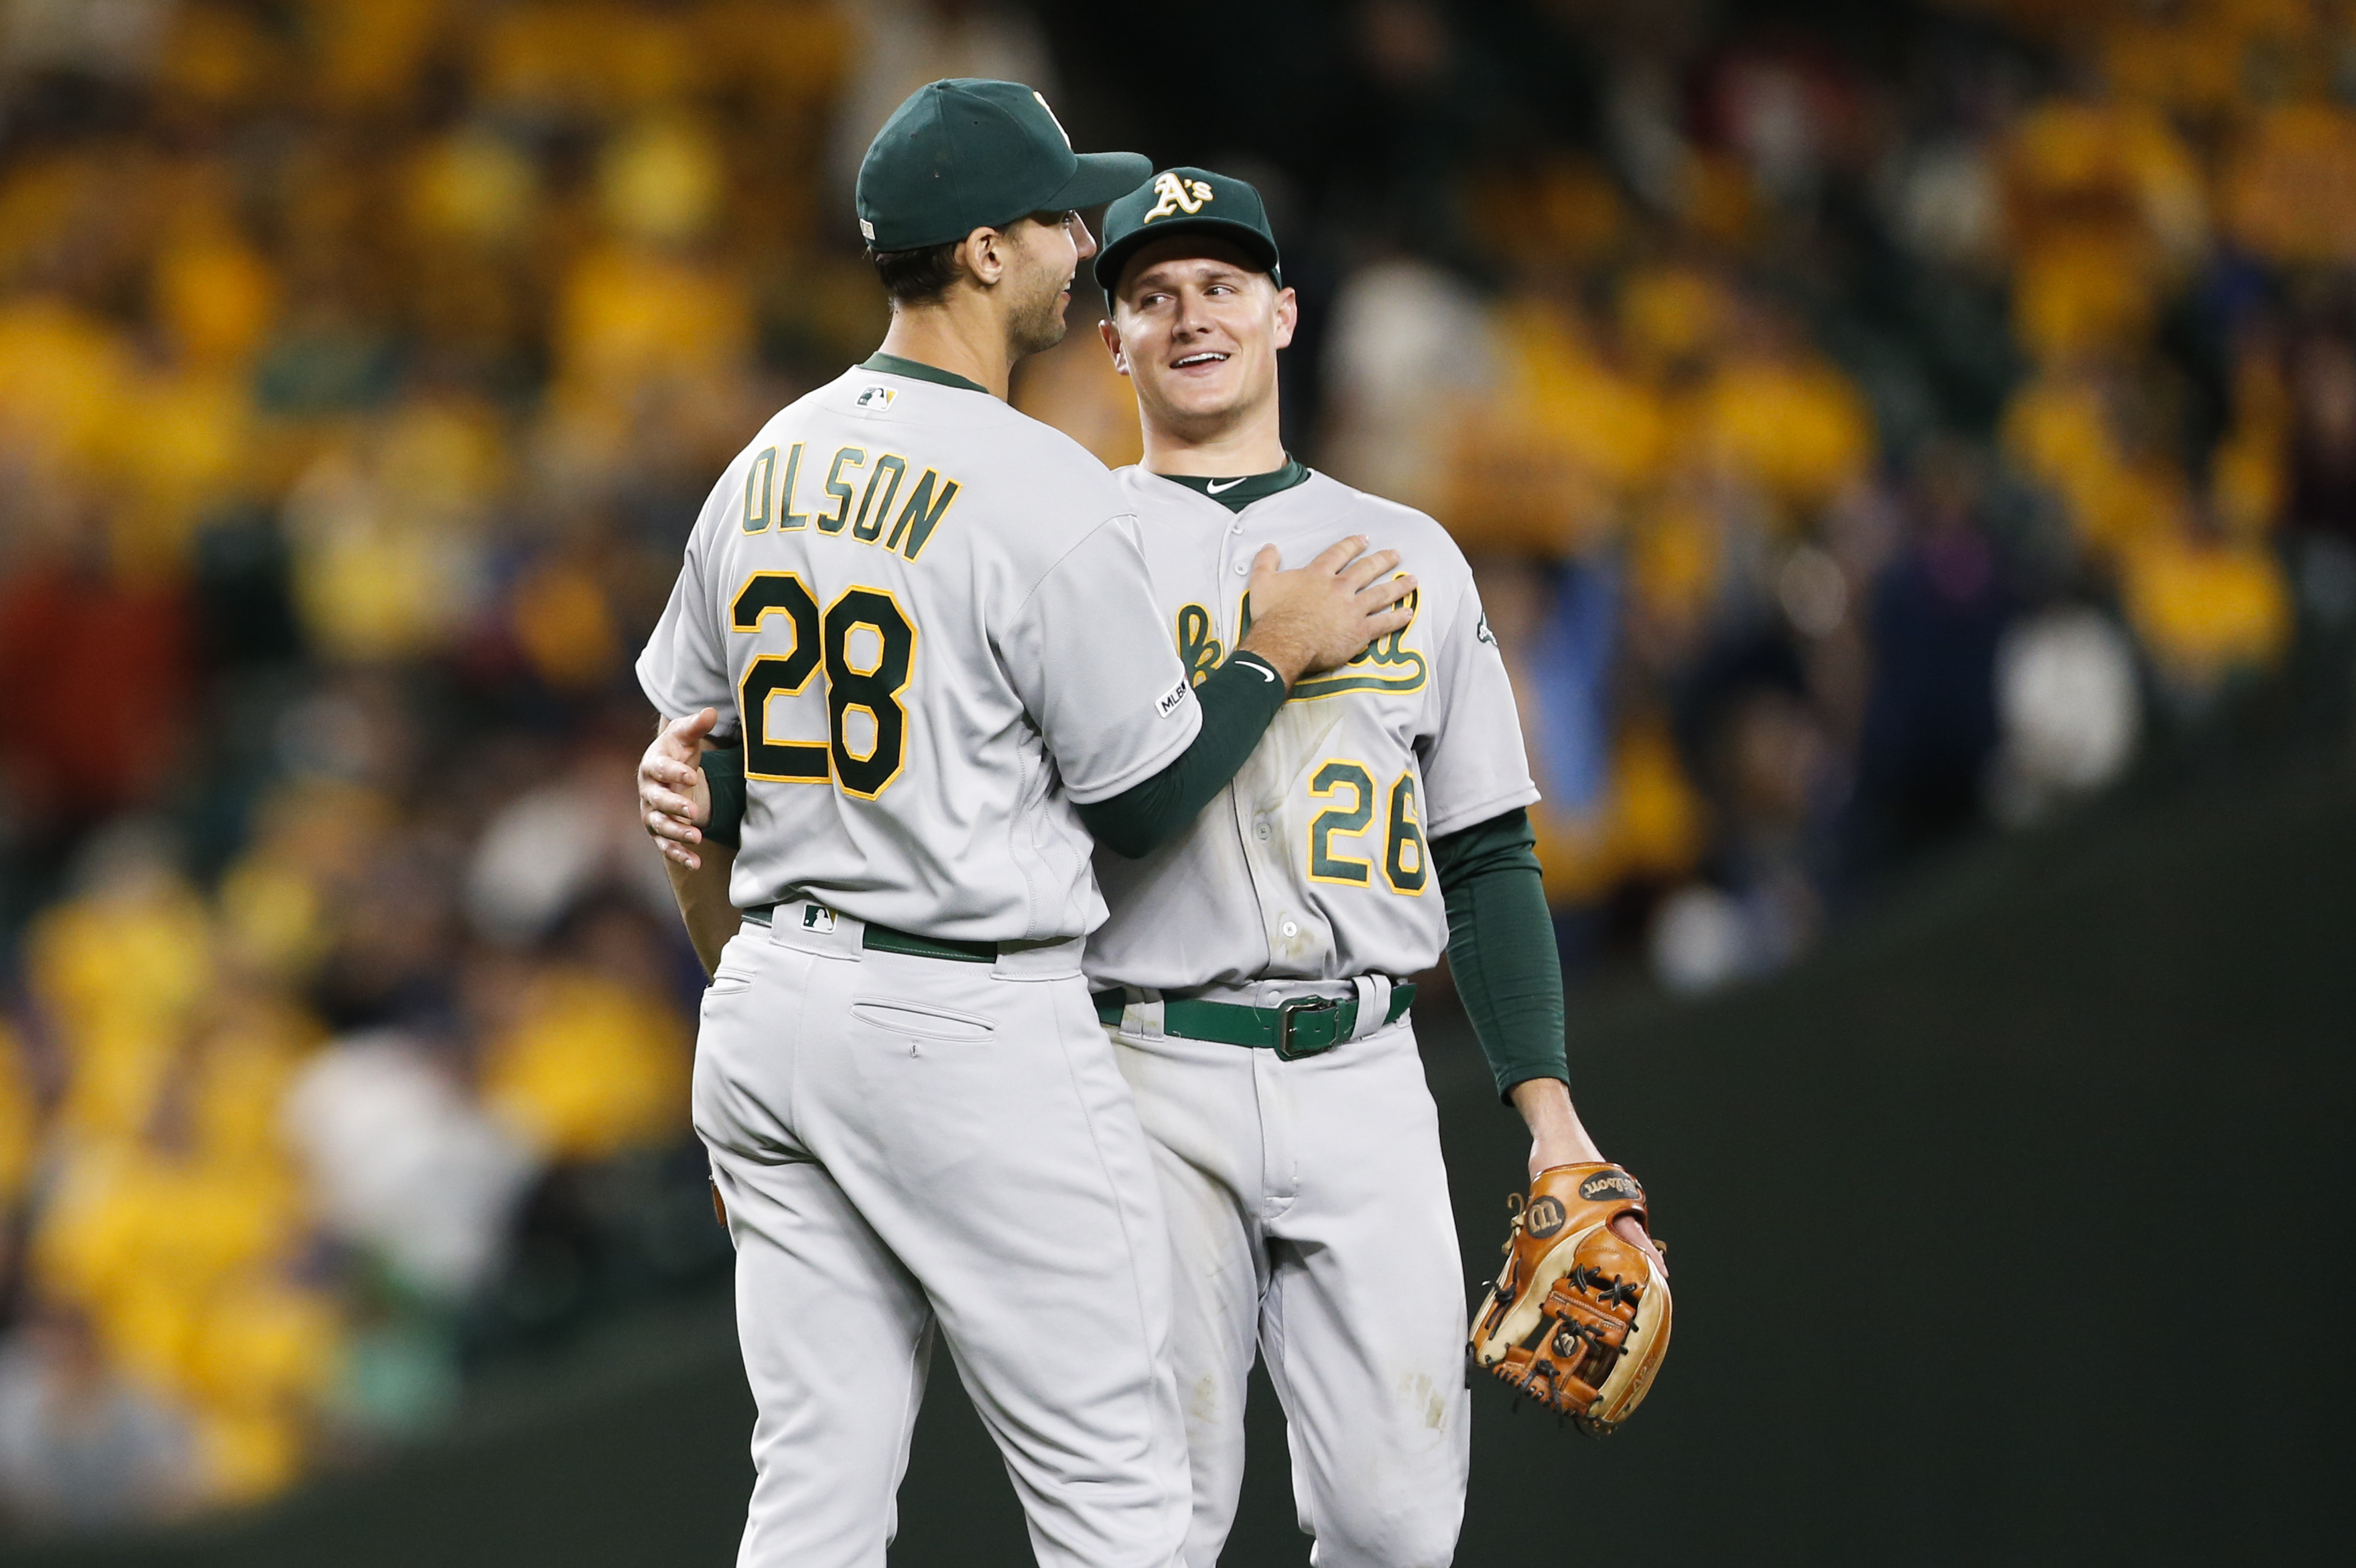 Having Extra-Inning Games End in a Home Run Derby Might Set Up Well for Athletics